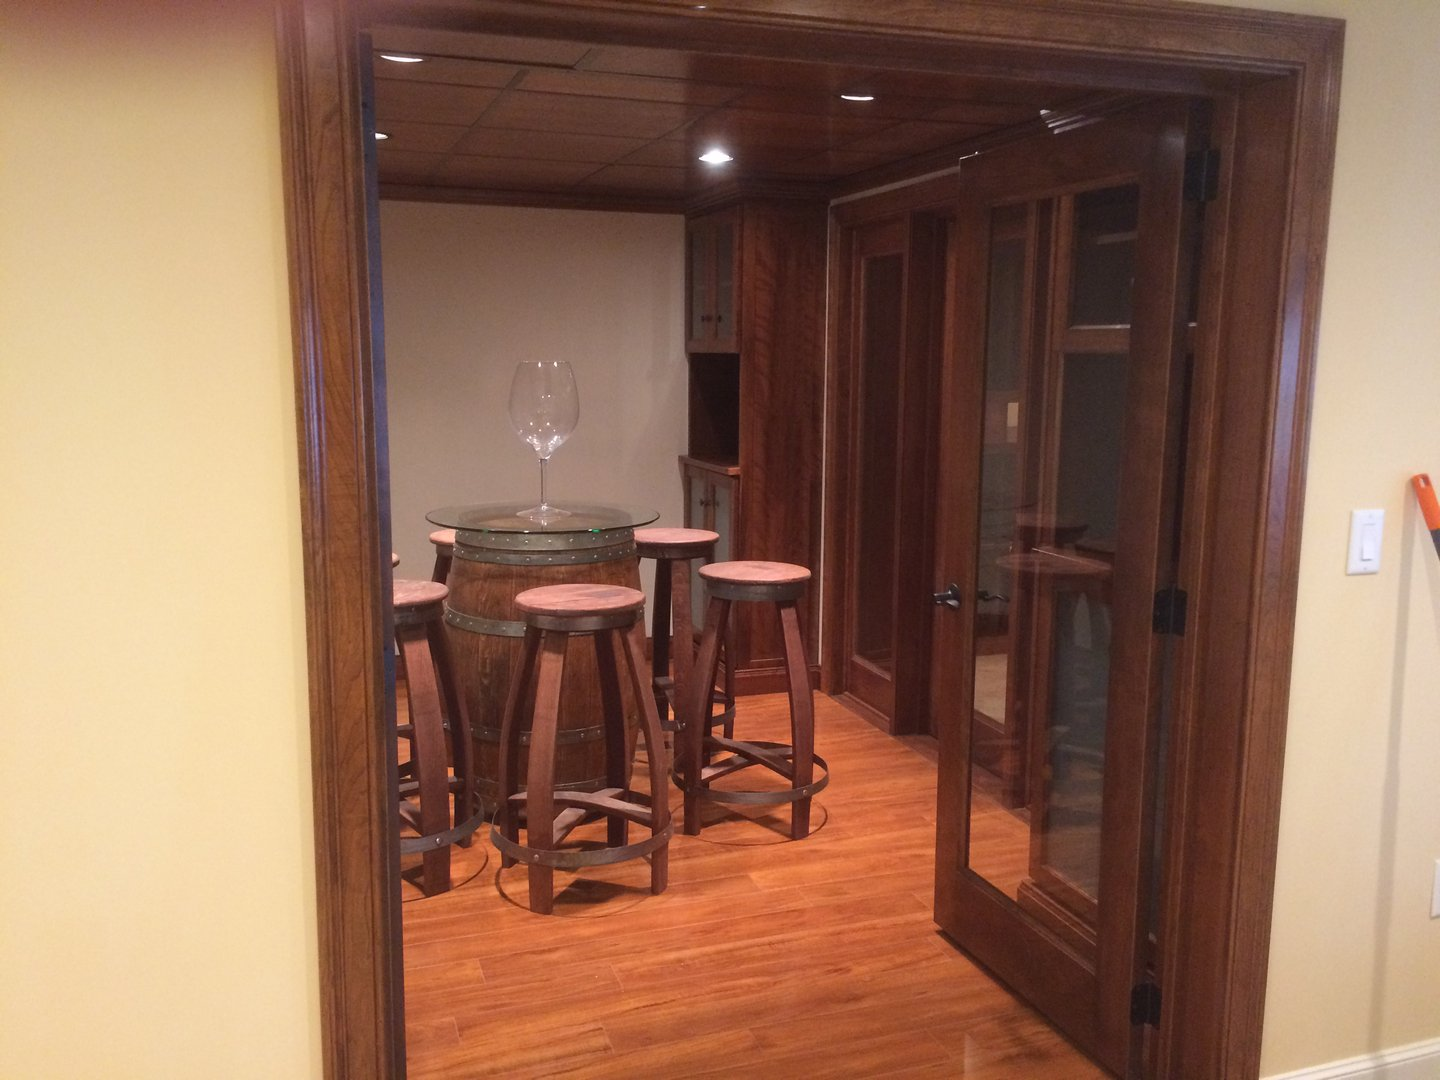 View through open doors into the Tasting Room